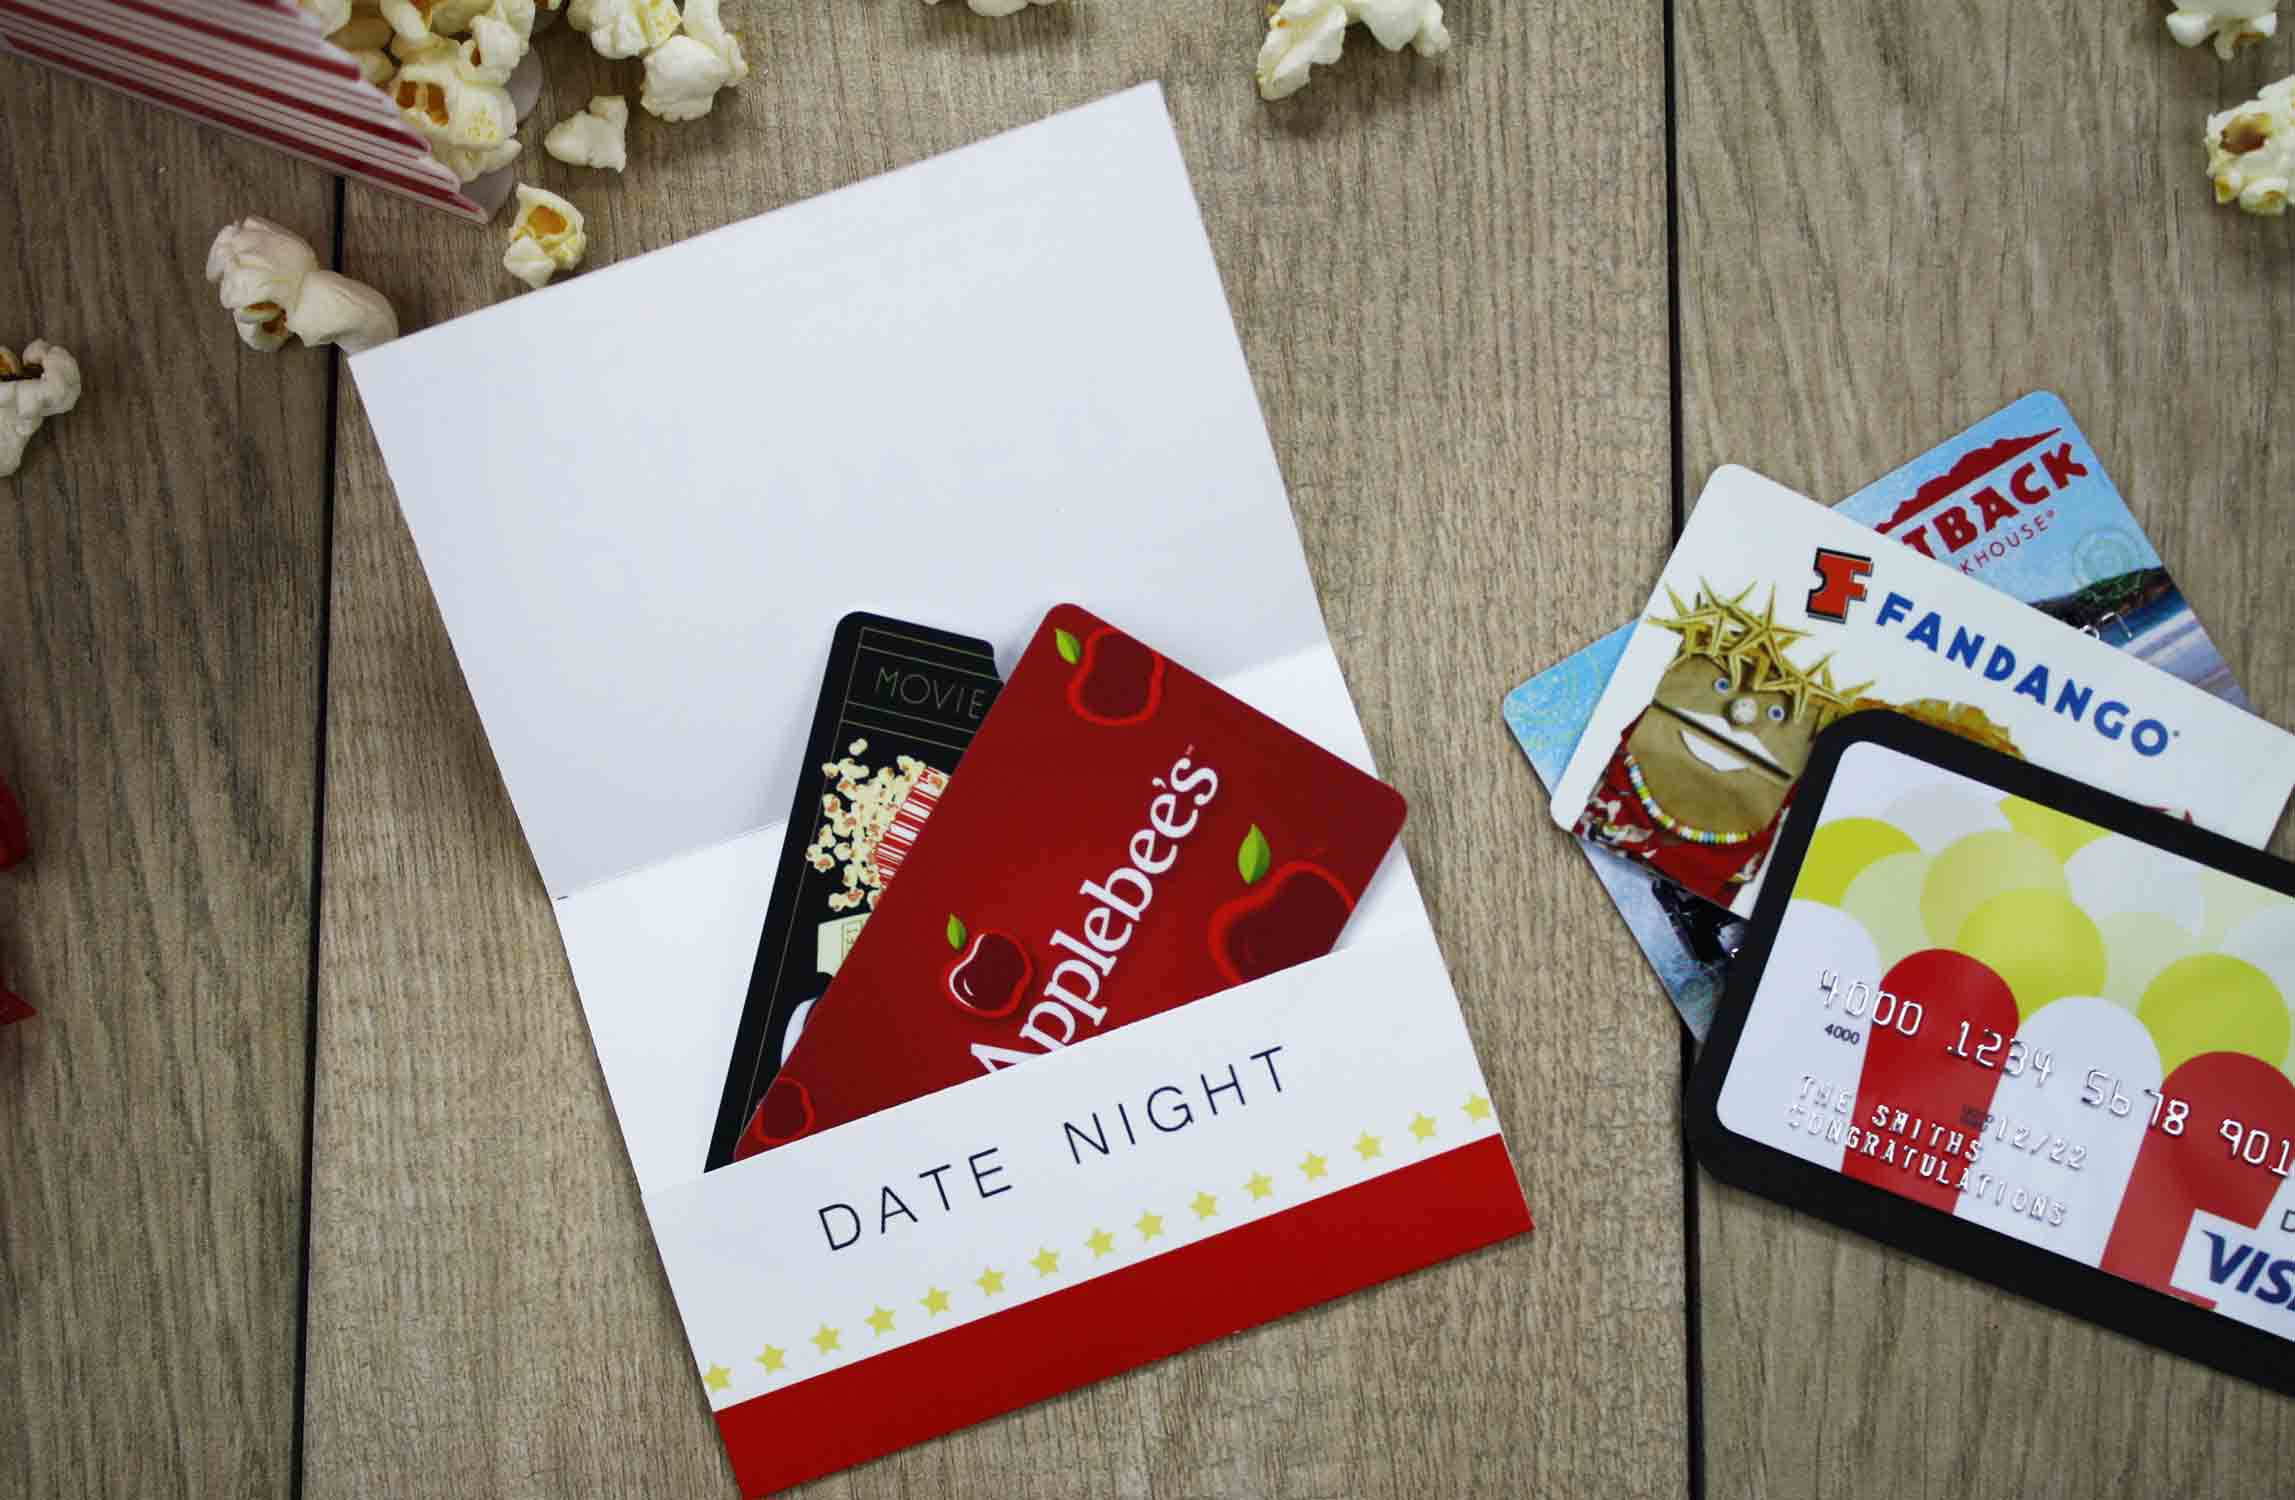 Free printable give date night for a wedding gift gcg folded gift card holder with cards in it negle Image collections